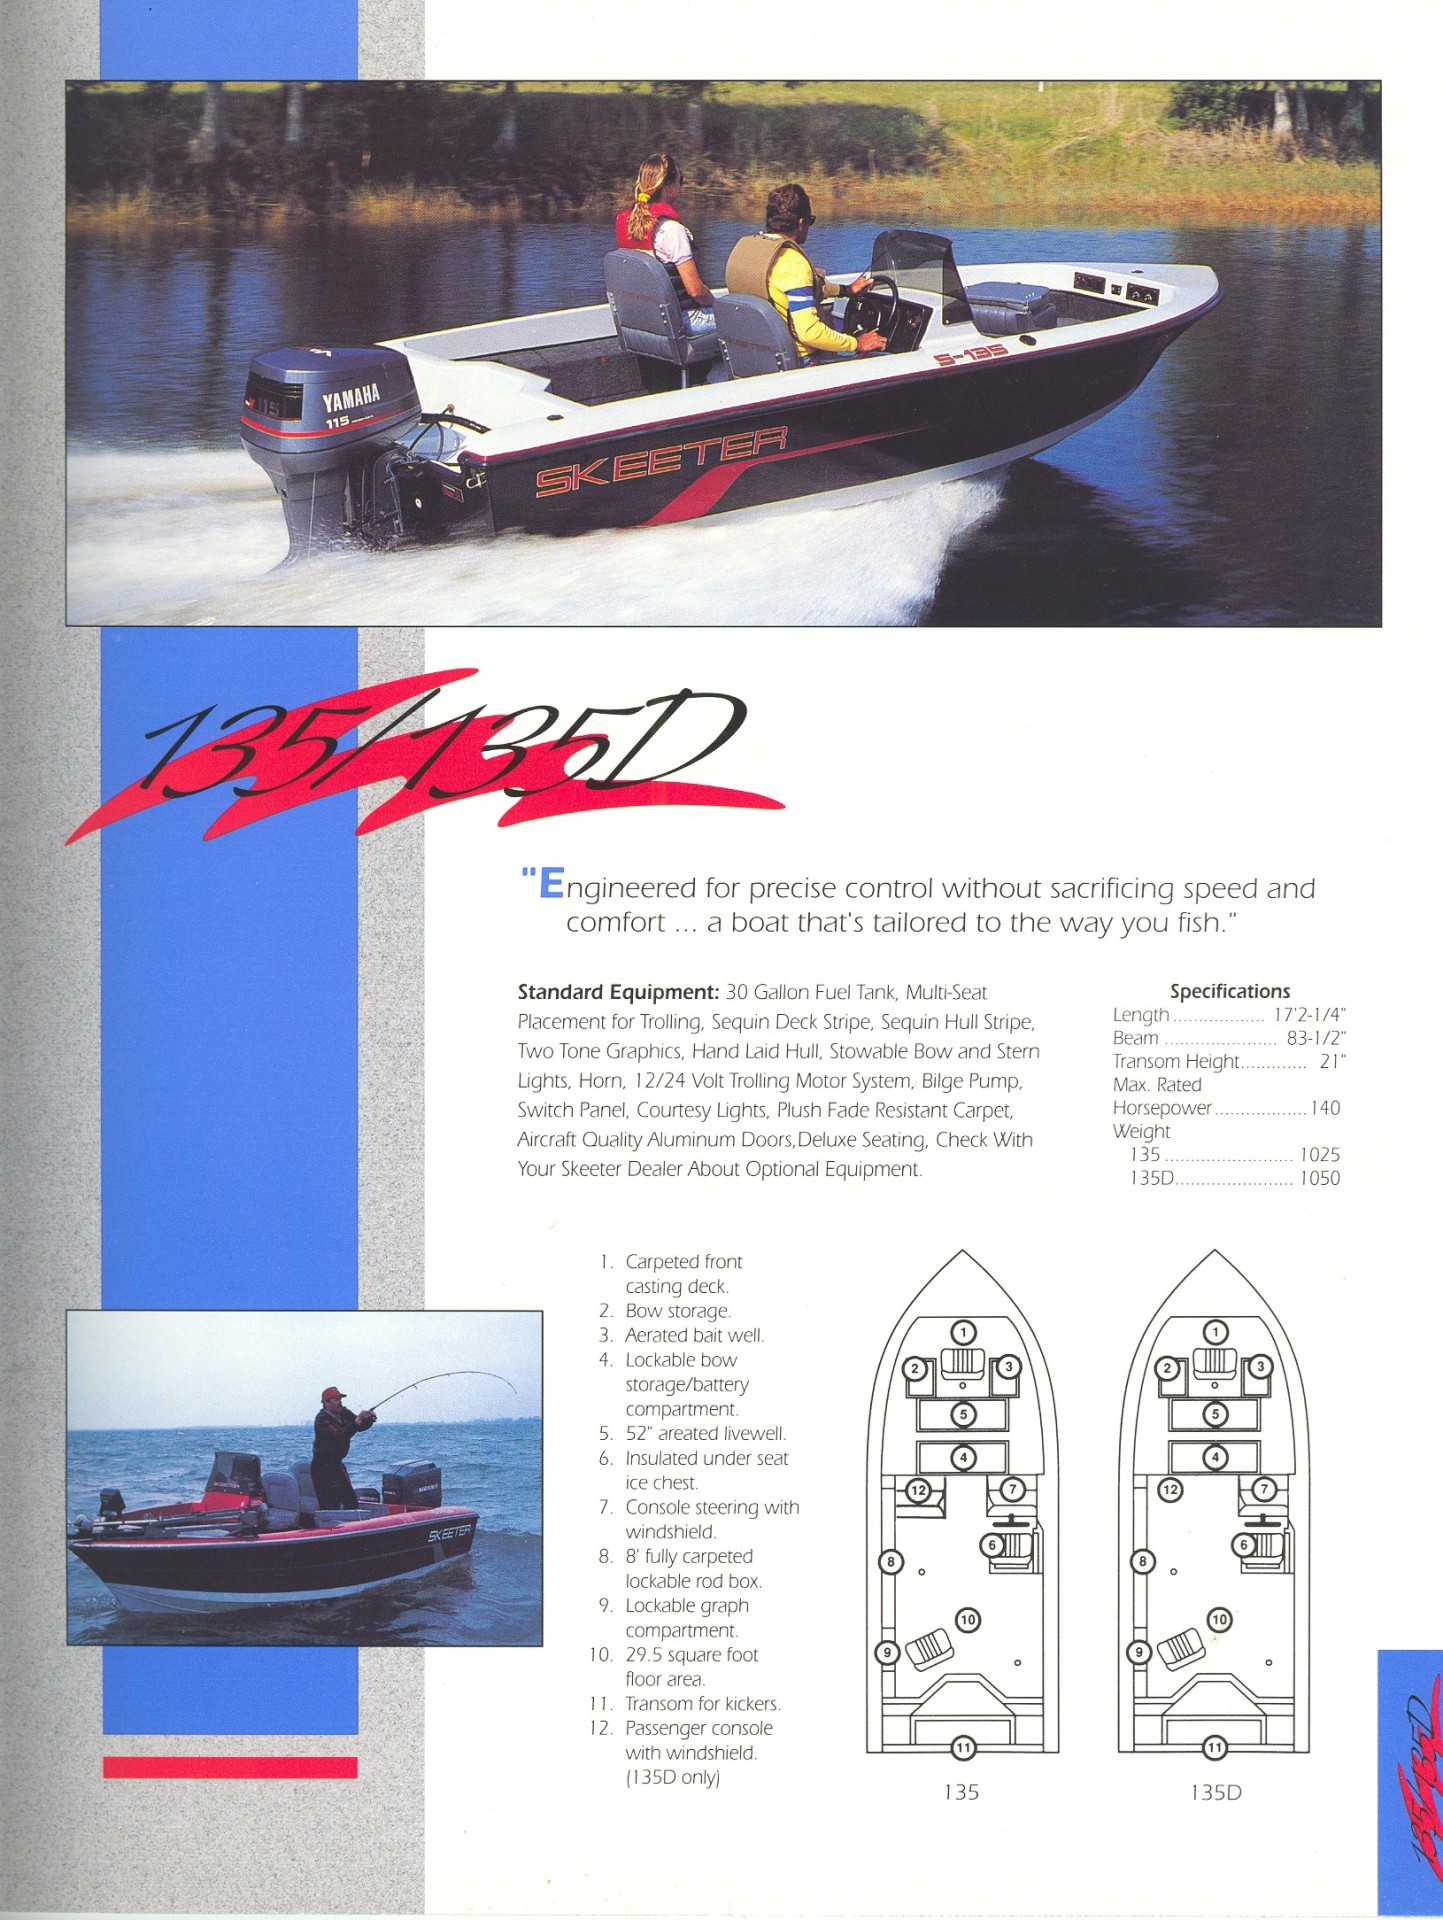 1991 Skeeter Boats Brochure Switch Panel Wiring Diagram Click To Return